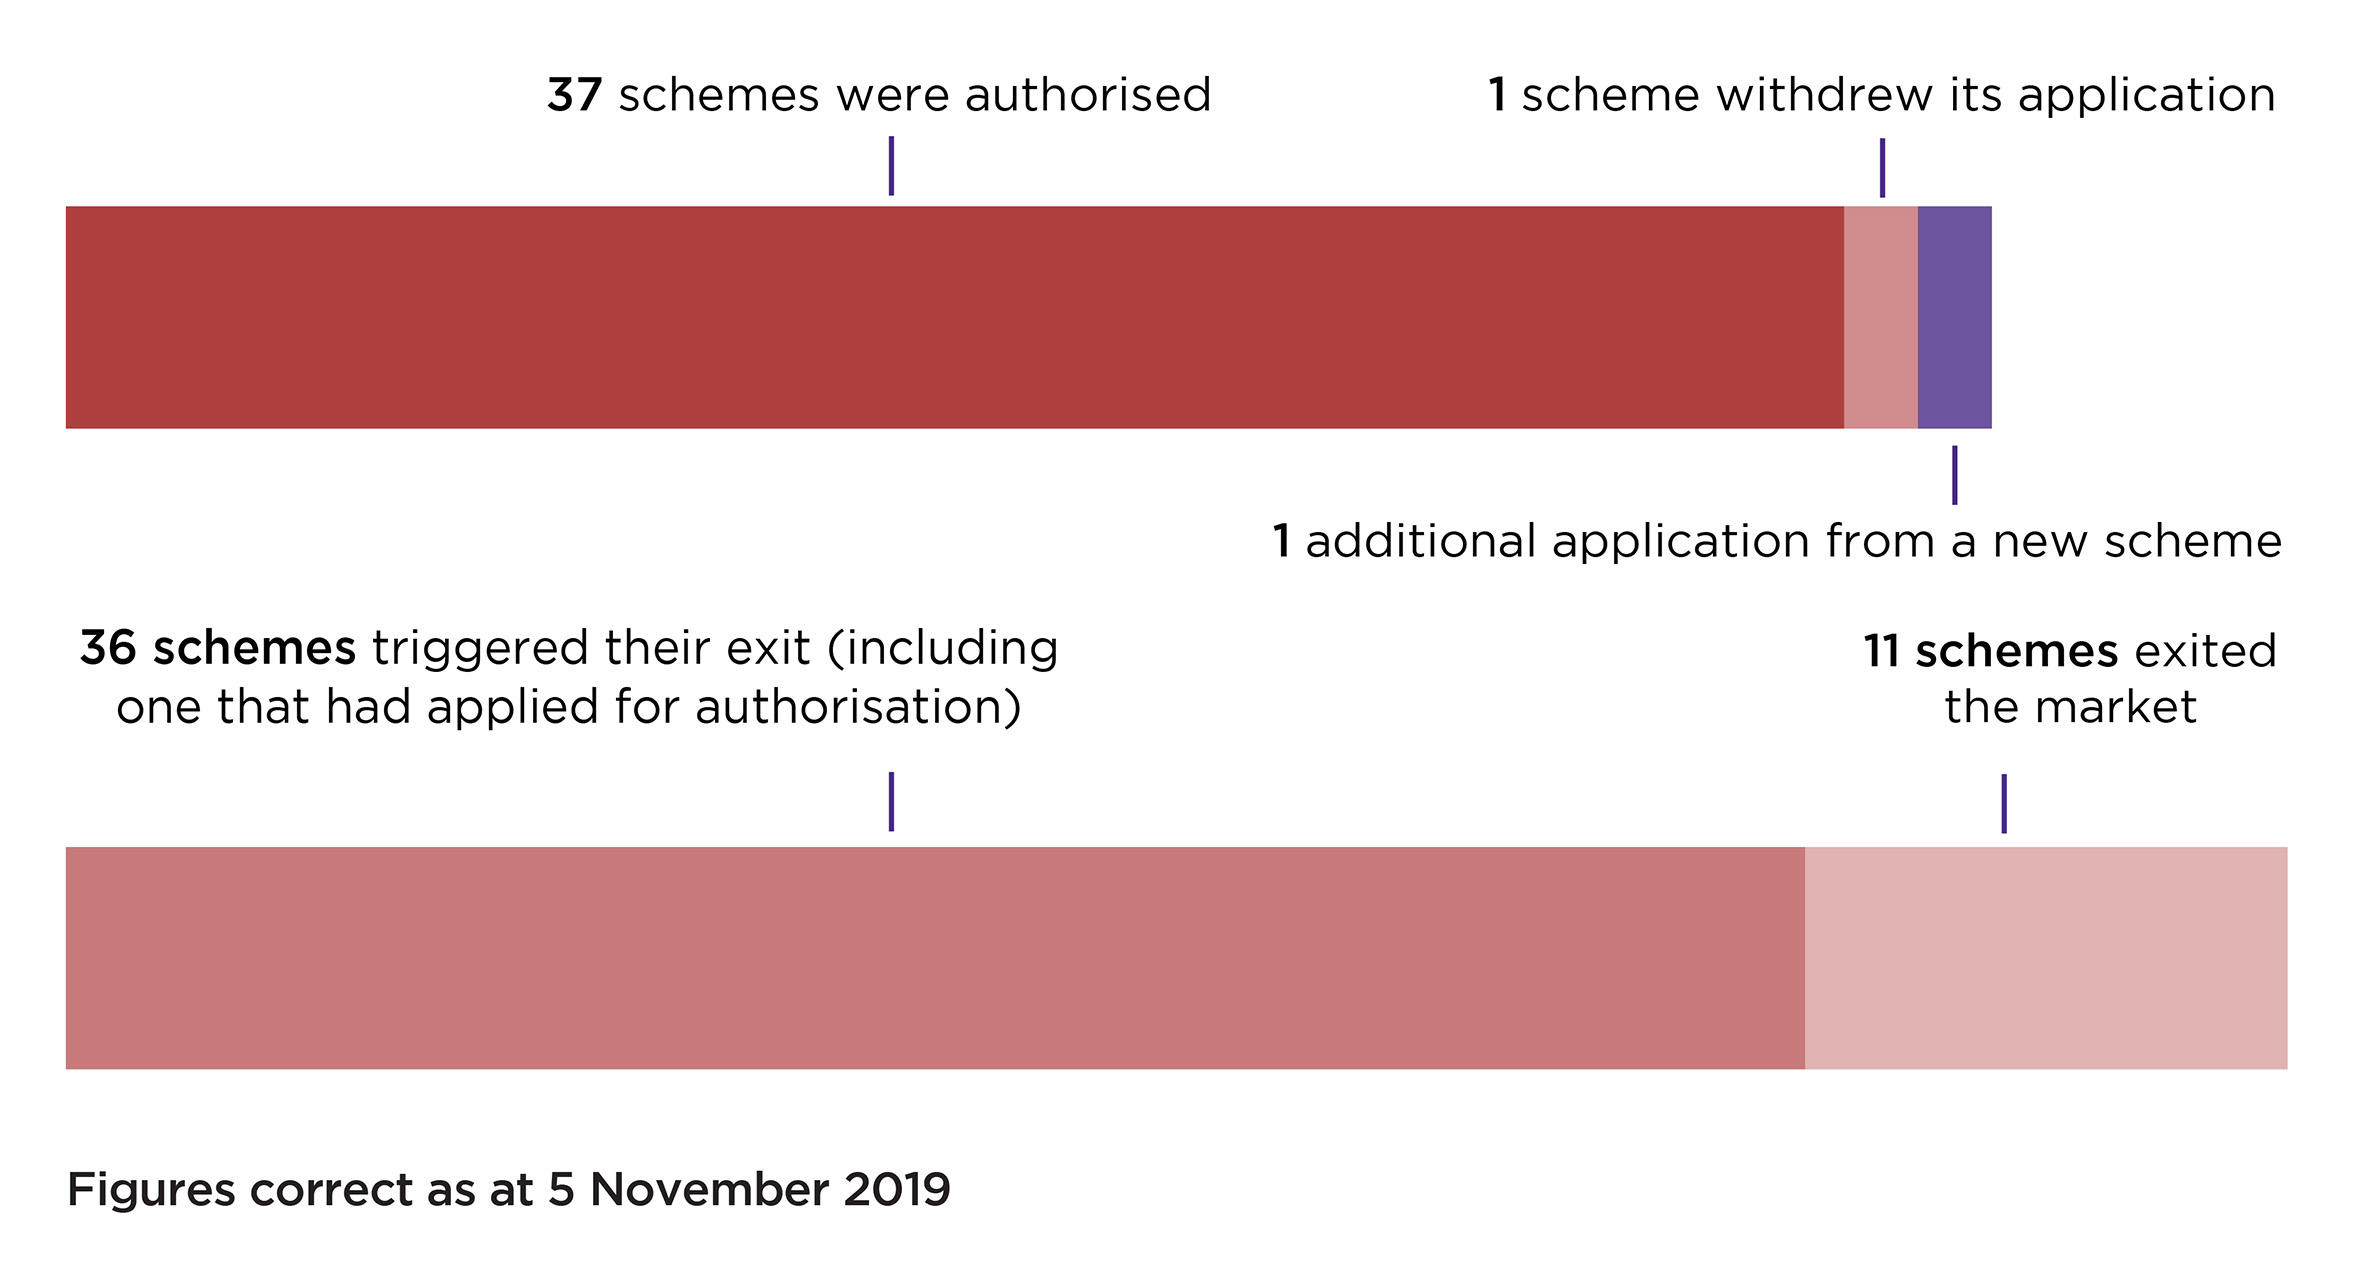 Chart shows: 37 schemes authorised, 1 withdew its application, 1 additional application from a new scheme, 36 triggered their exit (including one that had applied for authorisation), 11 exited the market. Figures correct as at 5 November 2019